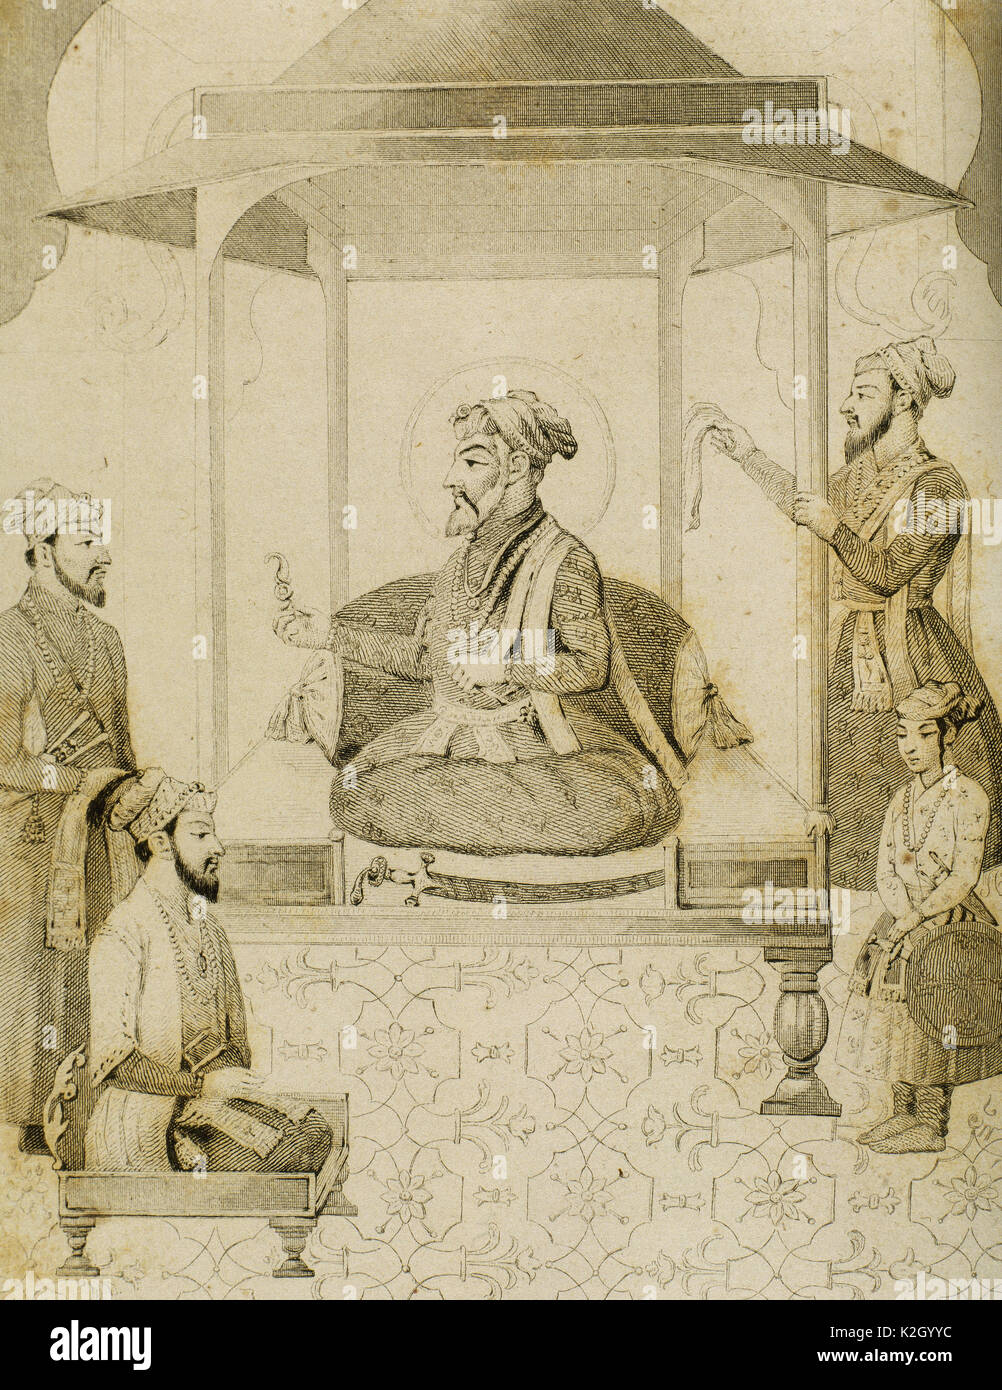 Shah Jahan I (1592-1666). Fifth Mughal Emperador who reigned from 1628-1658. He commissioned many monuments, the best known of which is the Taj Mahal in Agra, which entombs his wife Mumtaz Mahal. Sha Djahan giving a seat to Dara Shikoh (1615-1659), his eldest son. India. Engraving by Vernier. Lemaitre direxit. 'Panorama Universal, India', 1845. - Stock Image